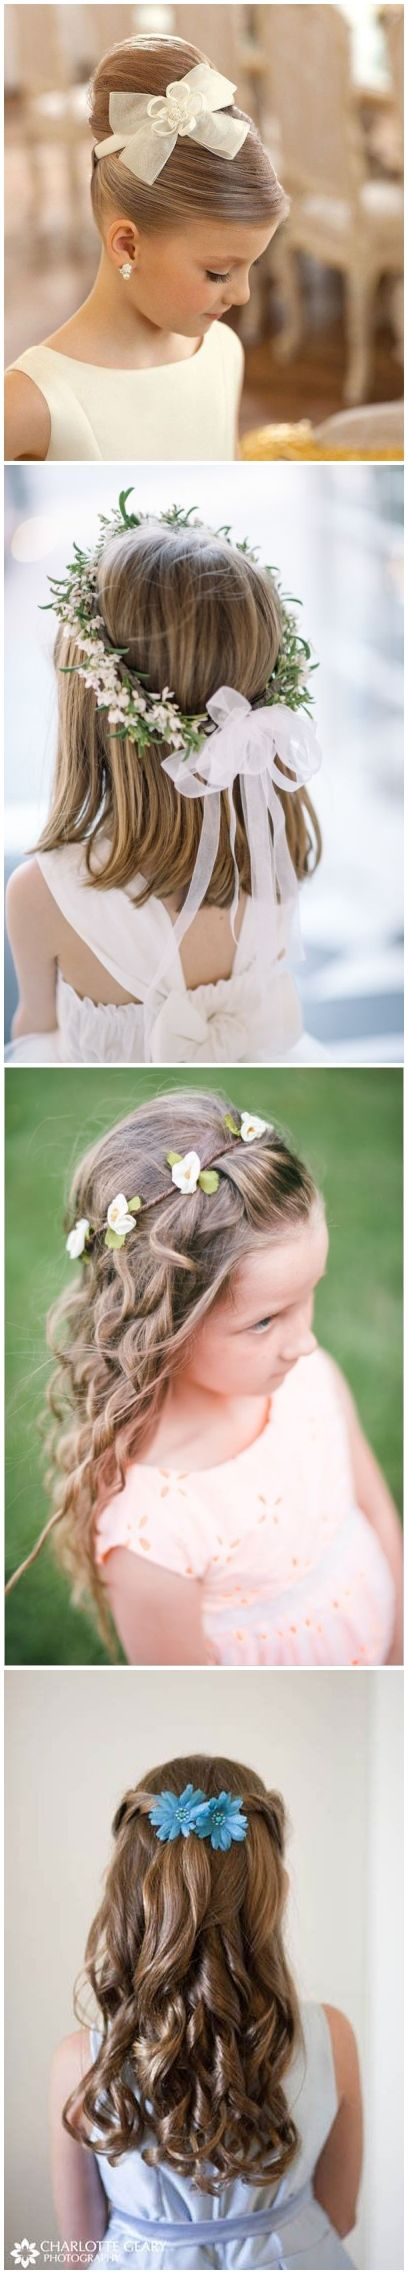 38 super cute little girl hairstyles for wedding | passion 4